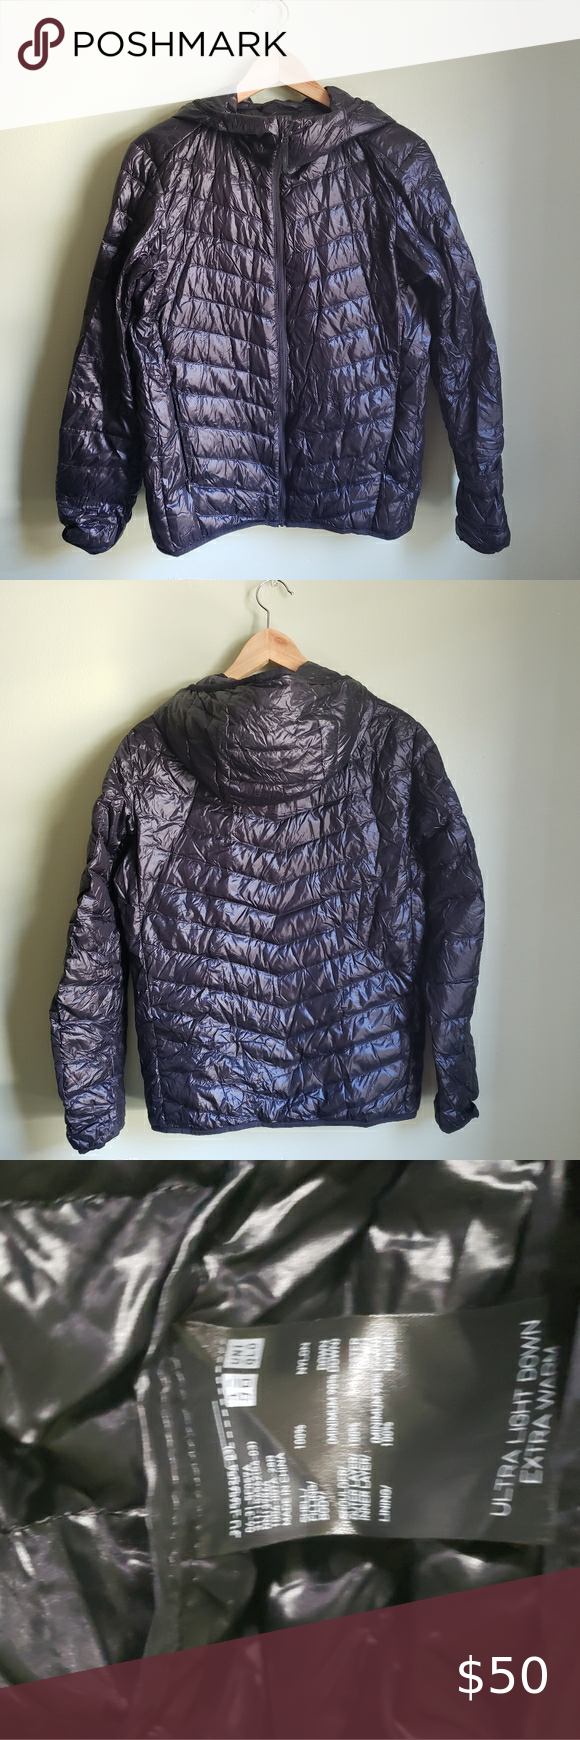 Uniqlo Puffer Down Jacket Packable Black Light in 2020